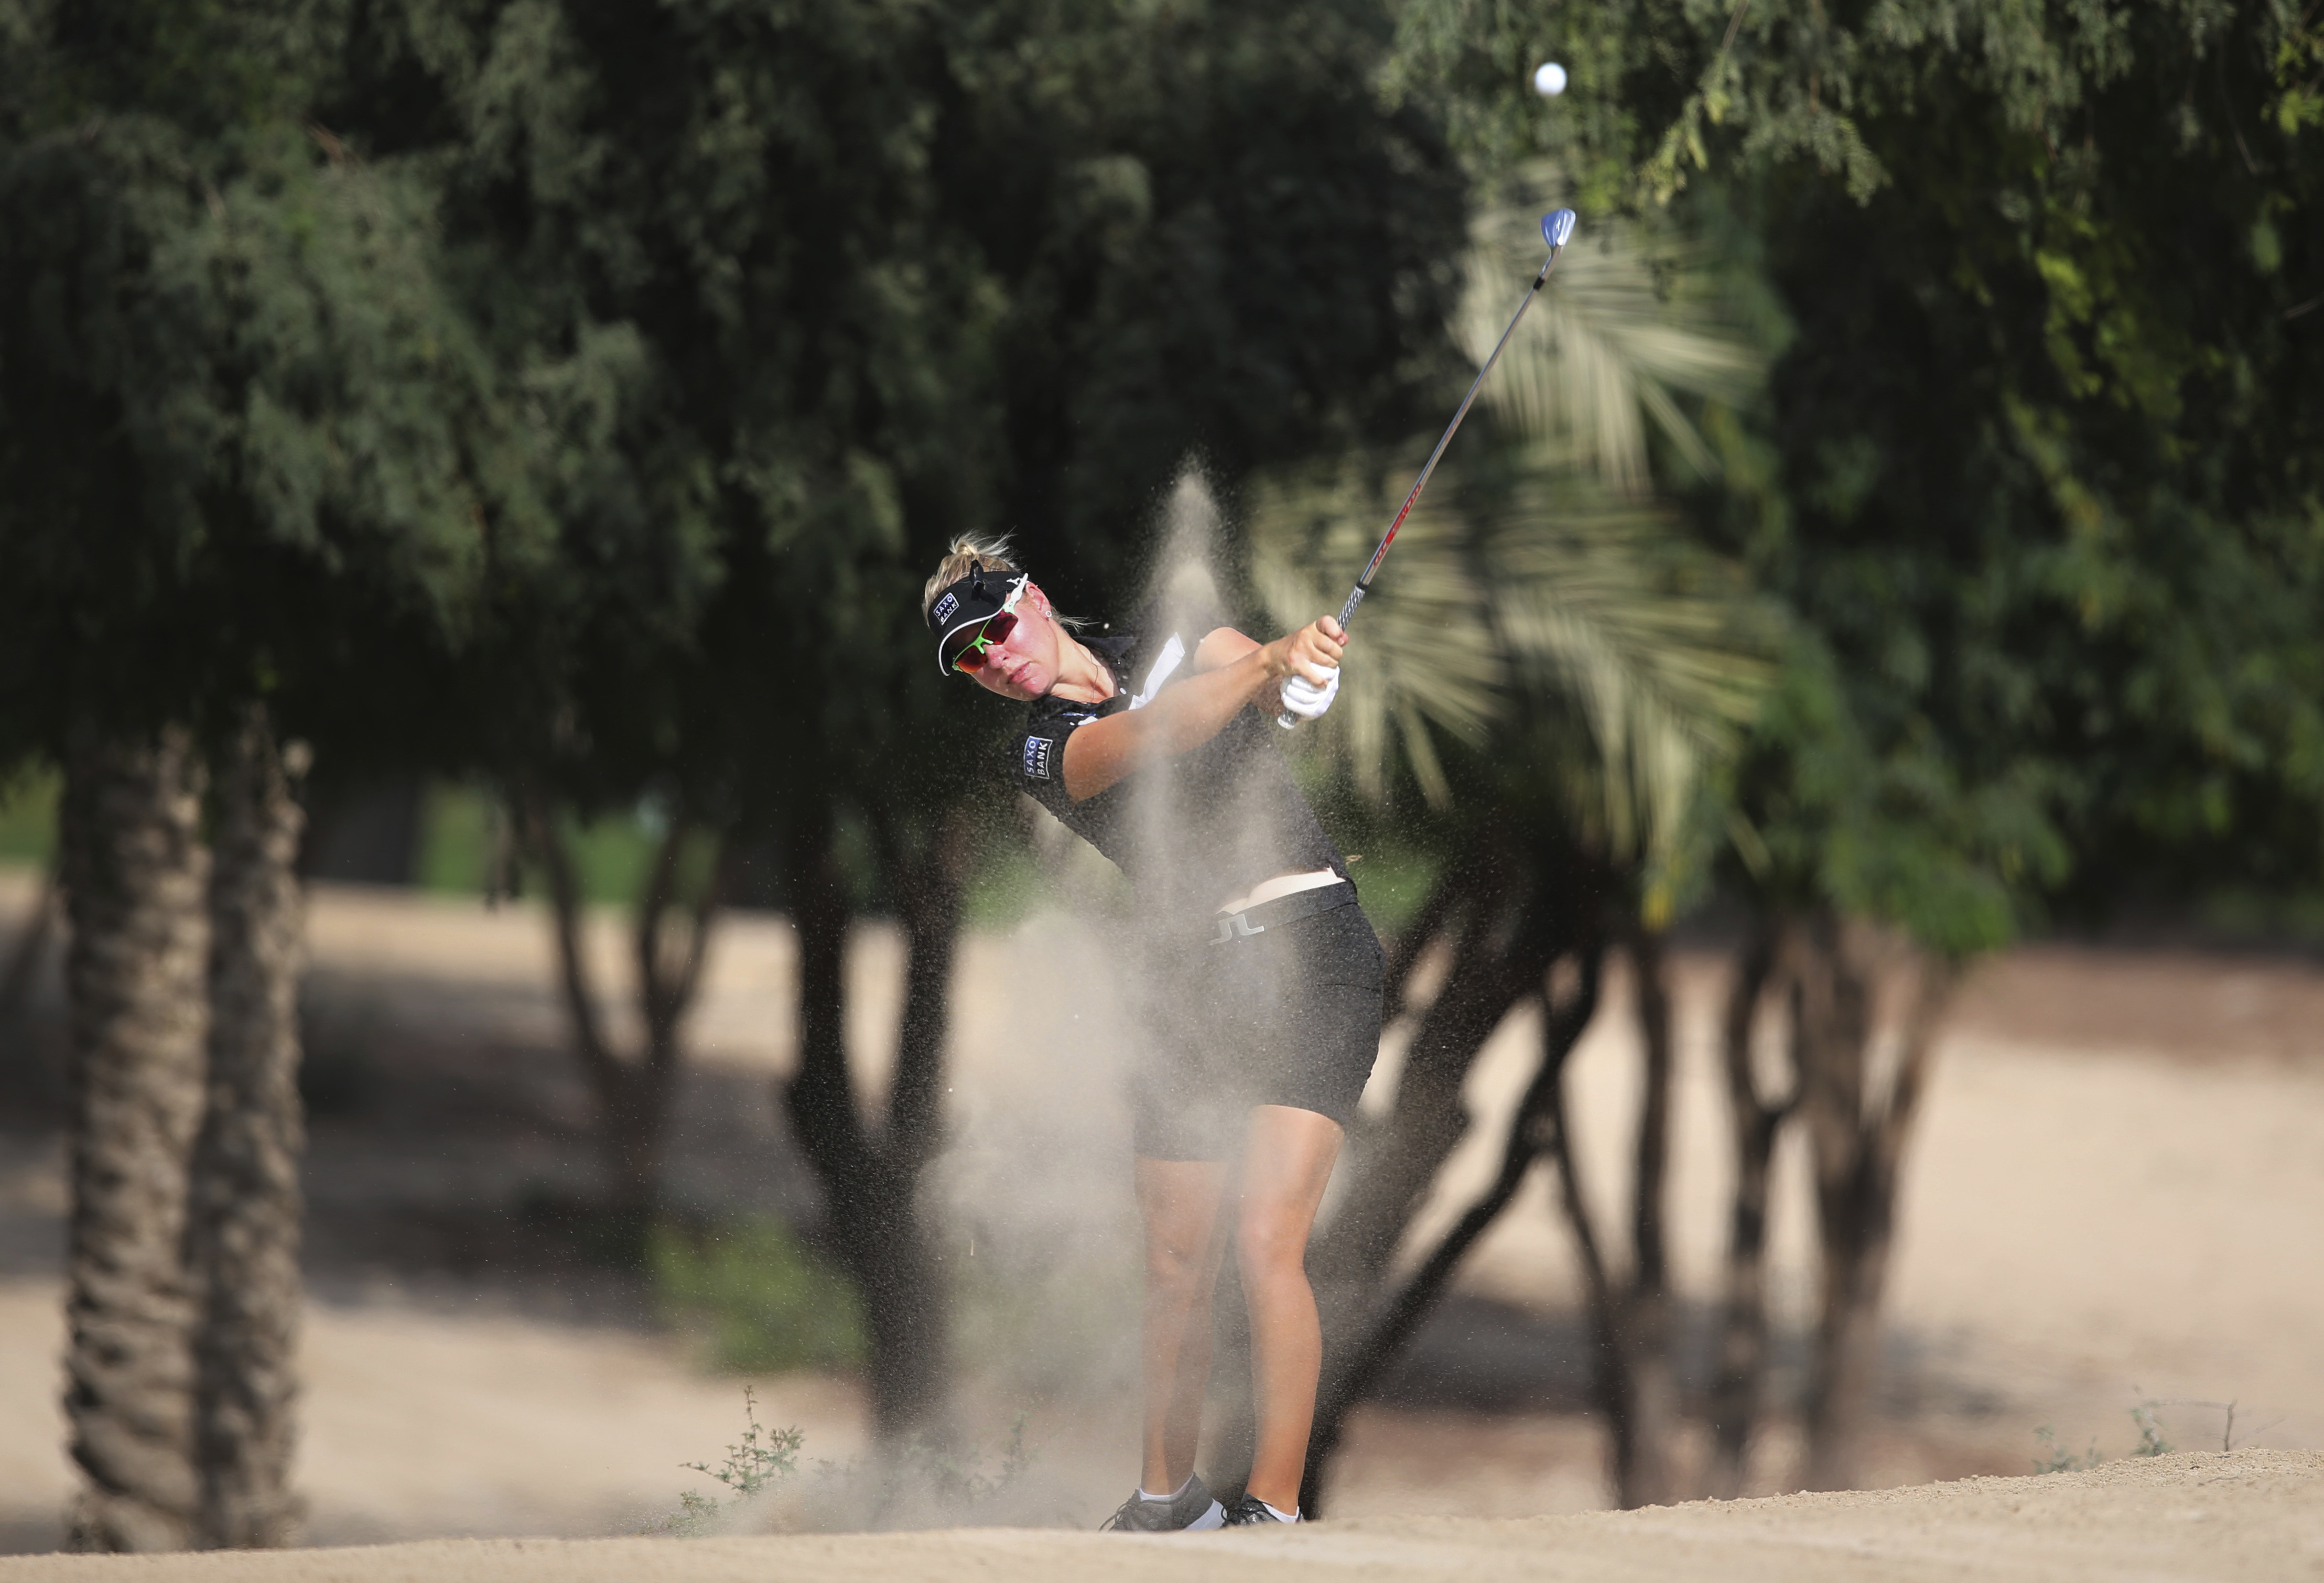 Nicole Broch Larsen of Denmark plays a shot on the 14th hole during the Revised 1st round of Dubai Ladies Masters golf tournament in Dubai, United Arab Emirates, Thursday, Dec. 8, 2016. (AP Photo/Kamran Jebreili)